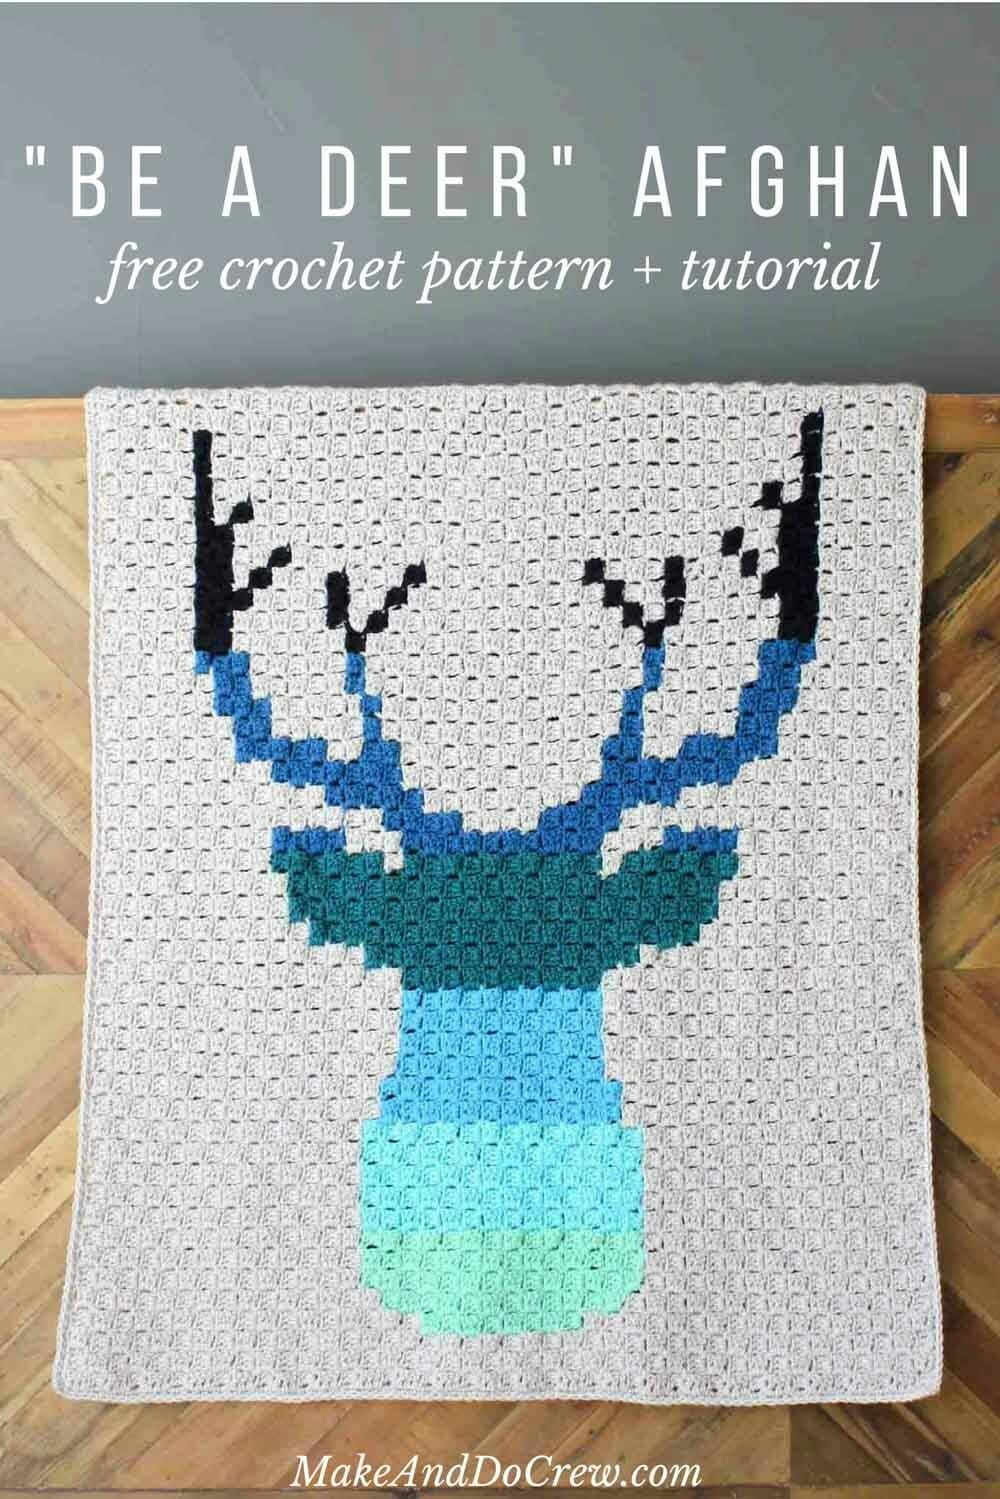 Crocheted | Crocheted pattern | Pinterest | Crochet, Crochet deer ...